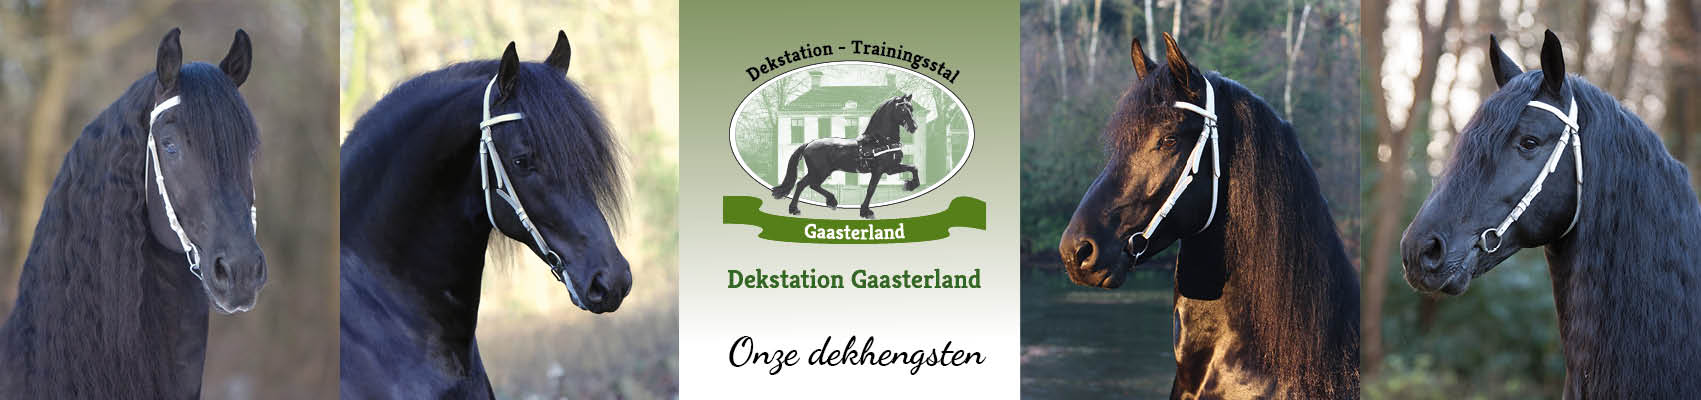 17.079_ Dekstationgaasterland_header-dekhengsten4